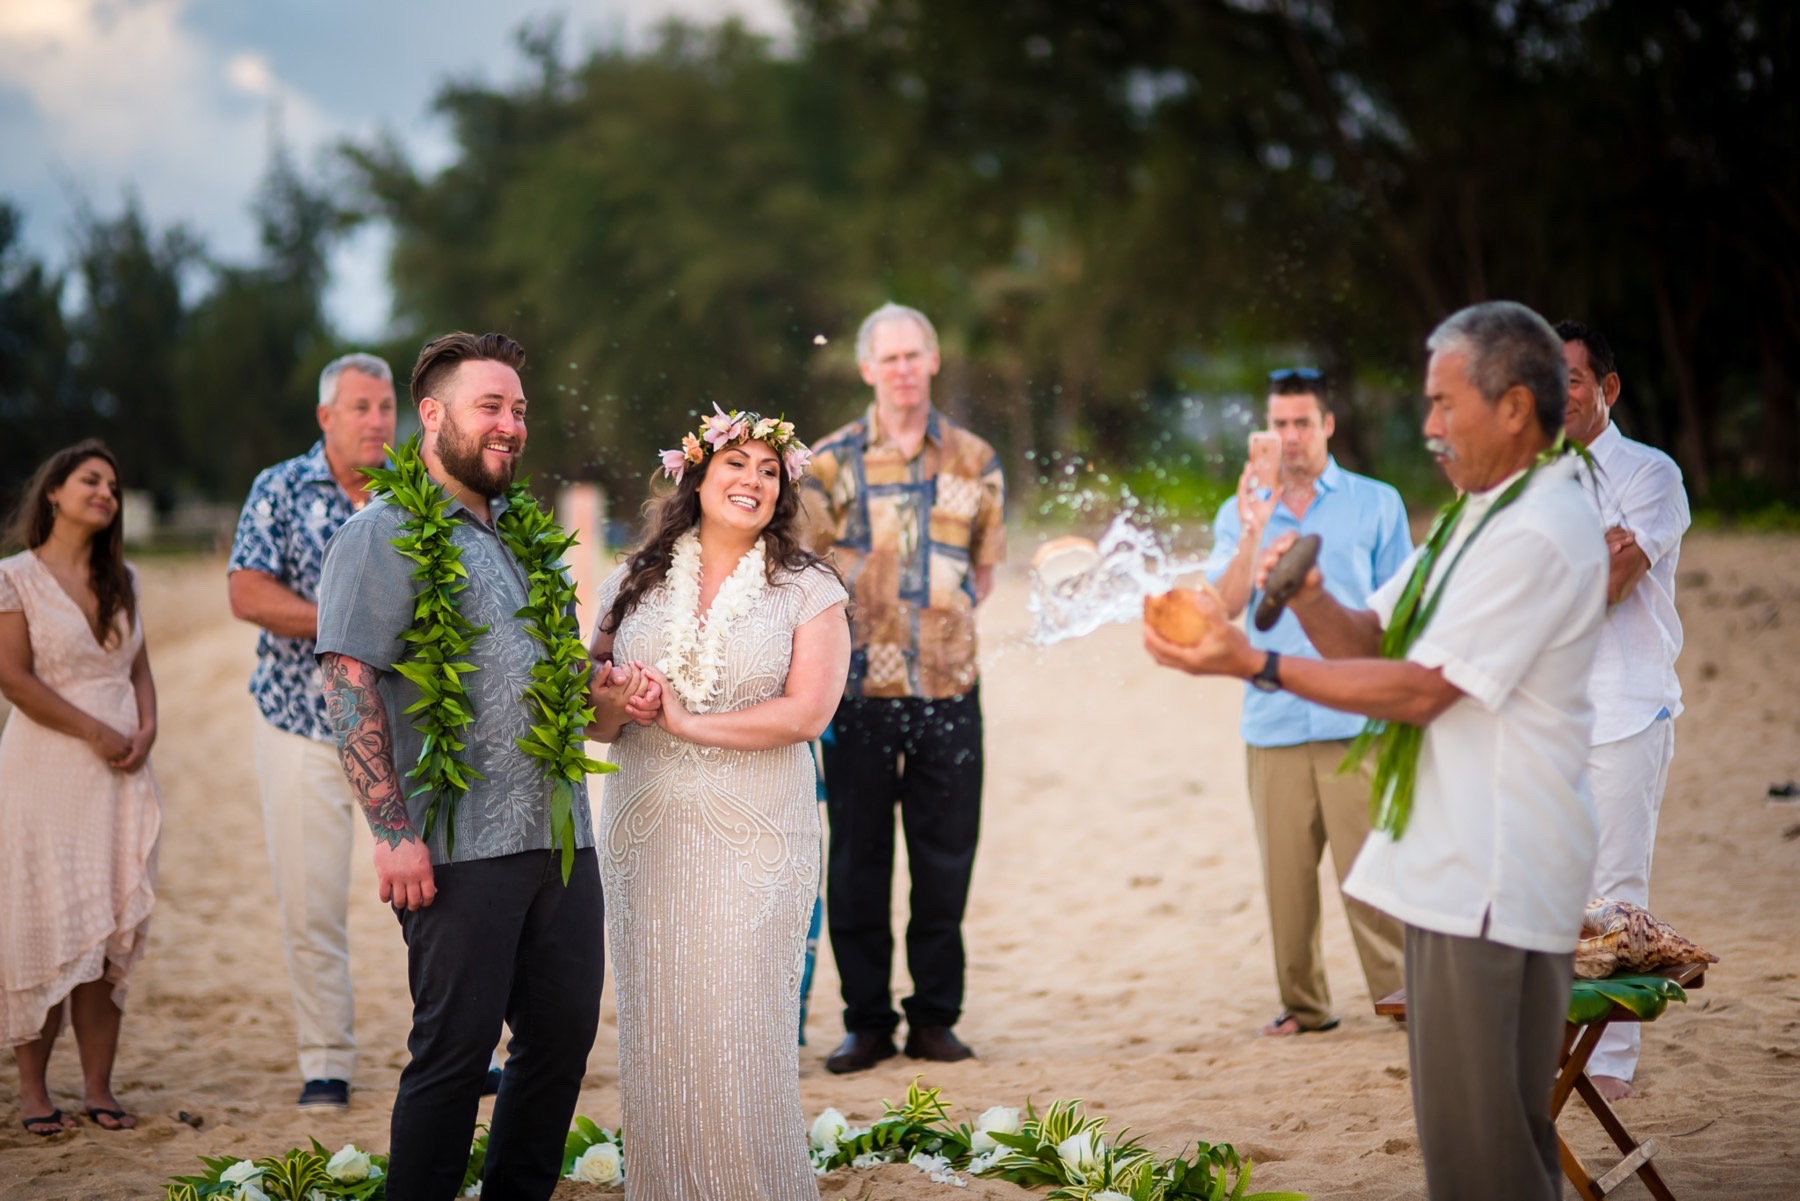 Alexis & Derek and family at their wedding in Hawaii.